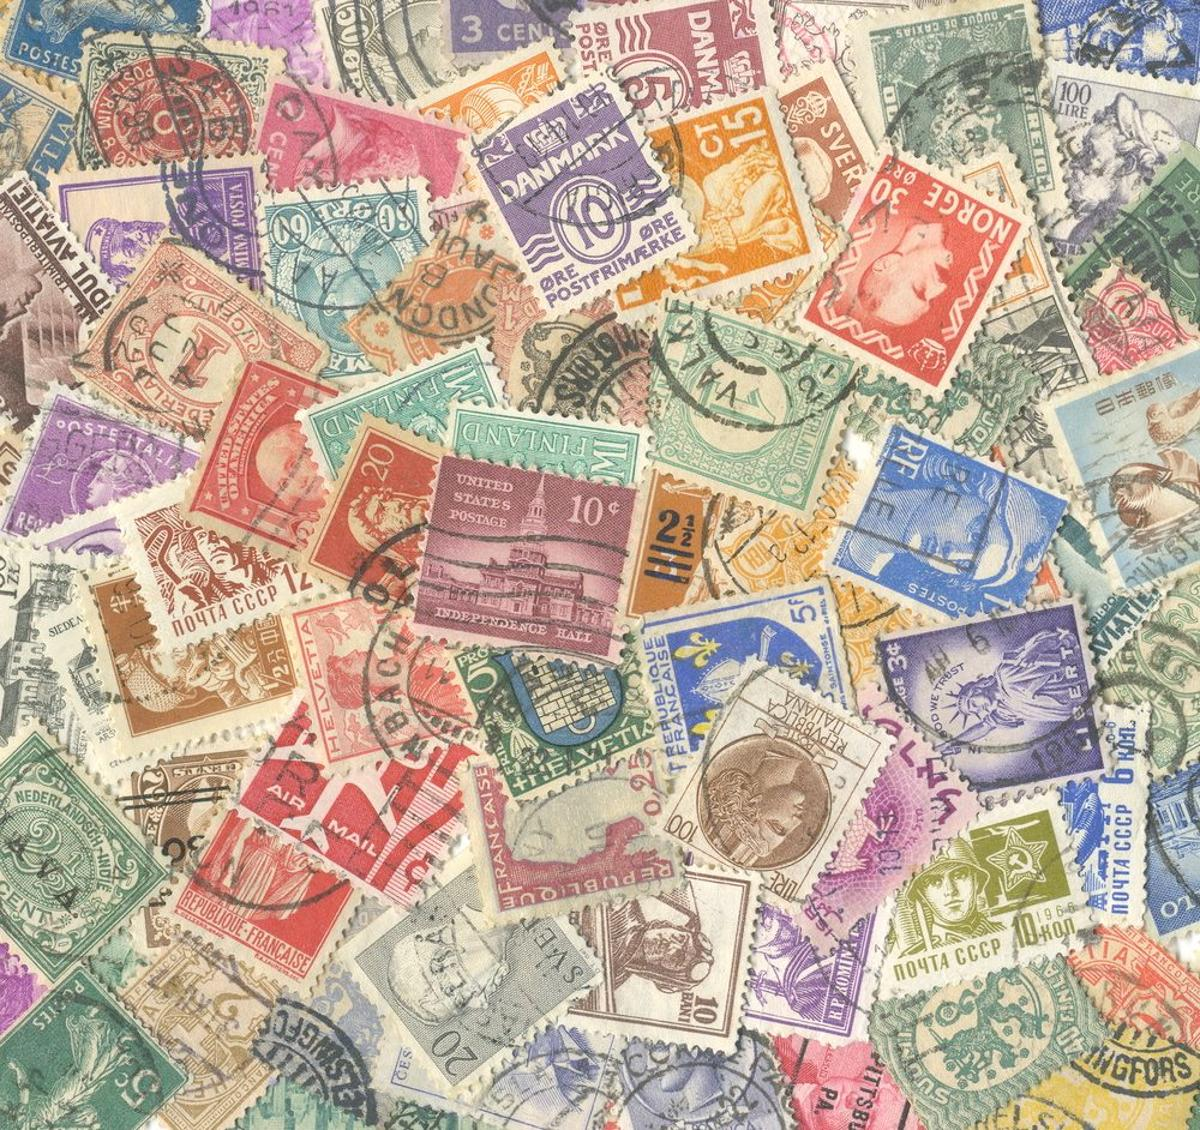 Scientists have discovered an easier new way of detecting bogus rare stamps (Image: Shutterstock)